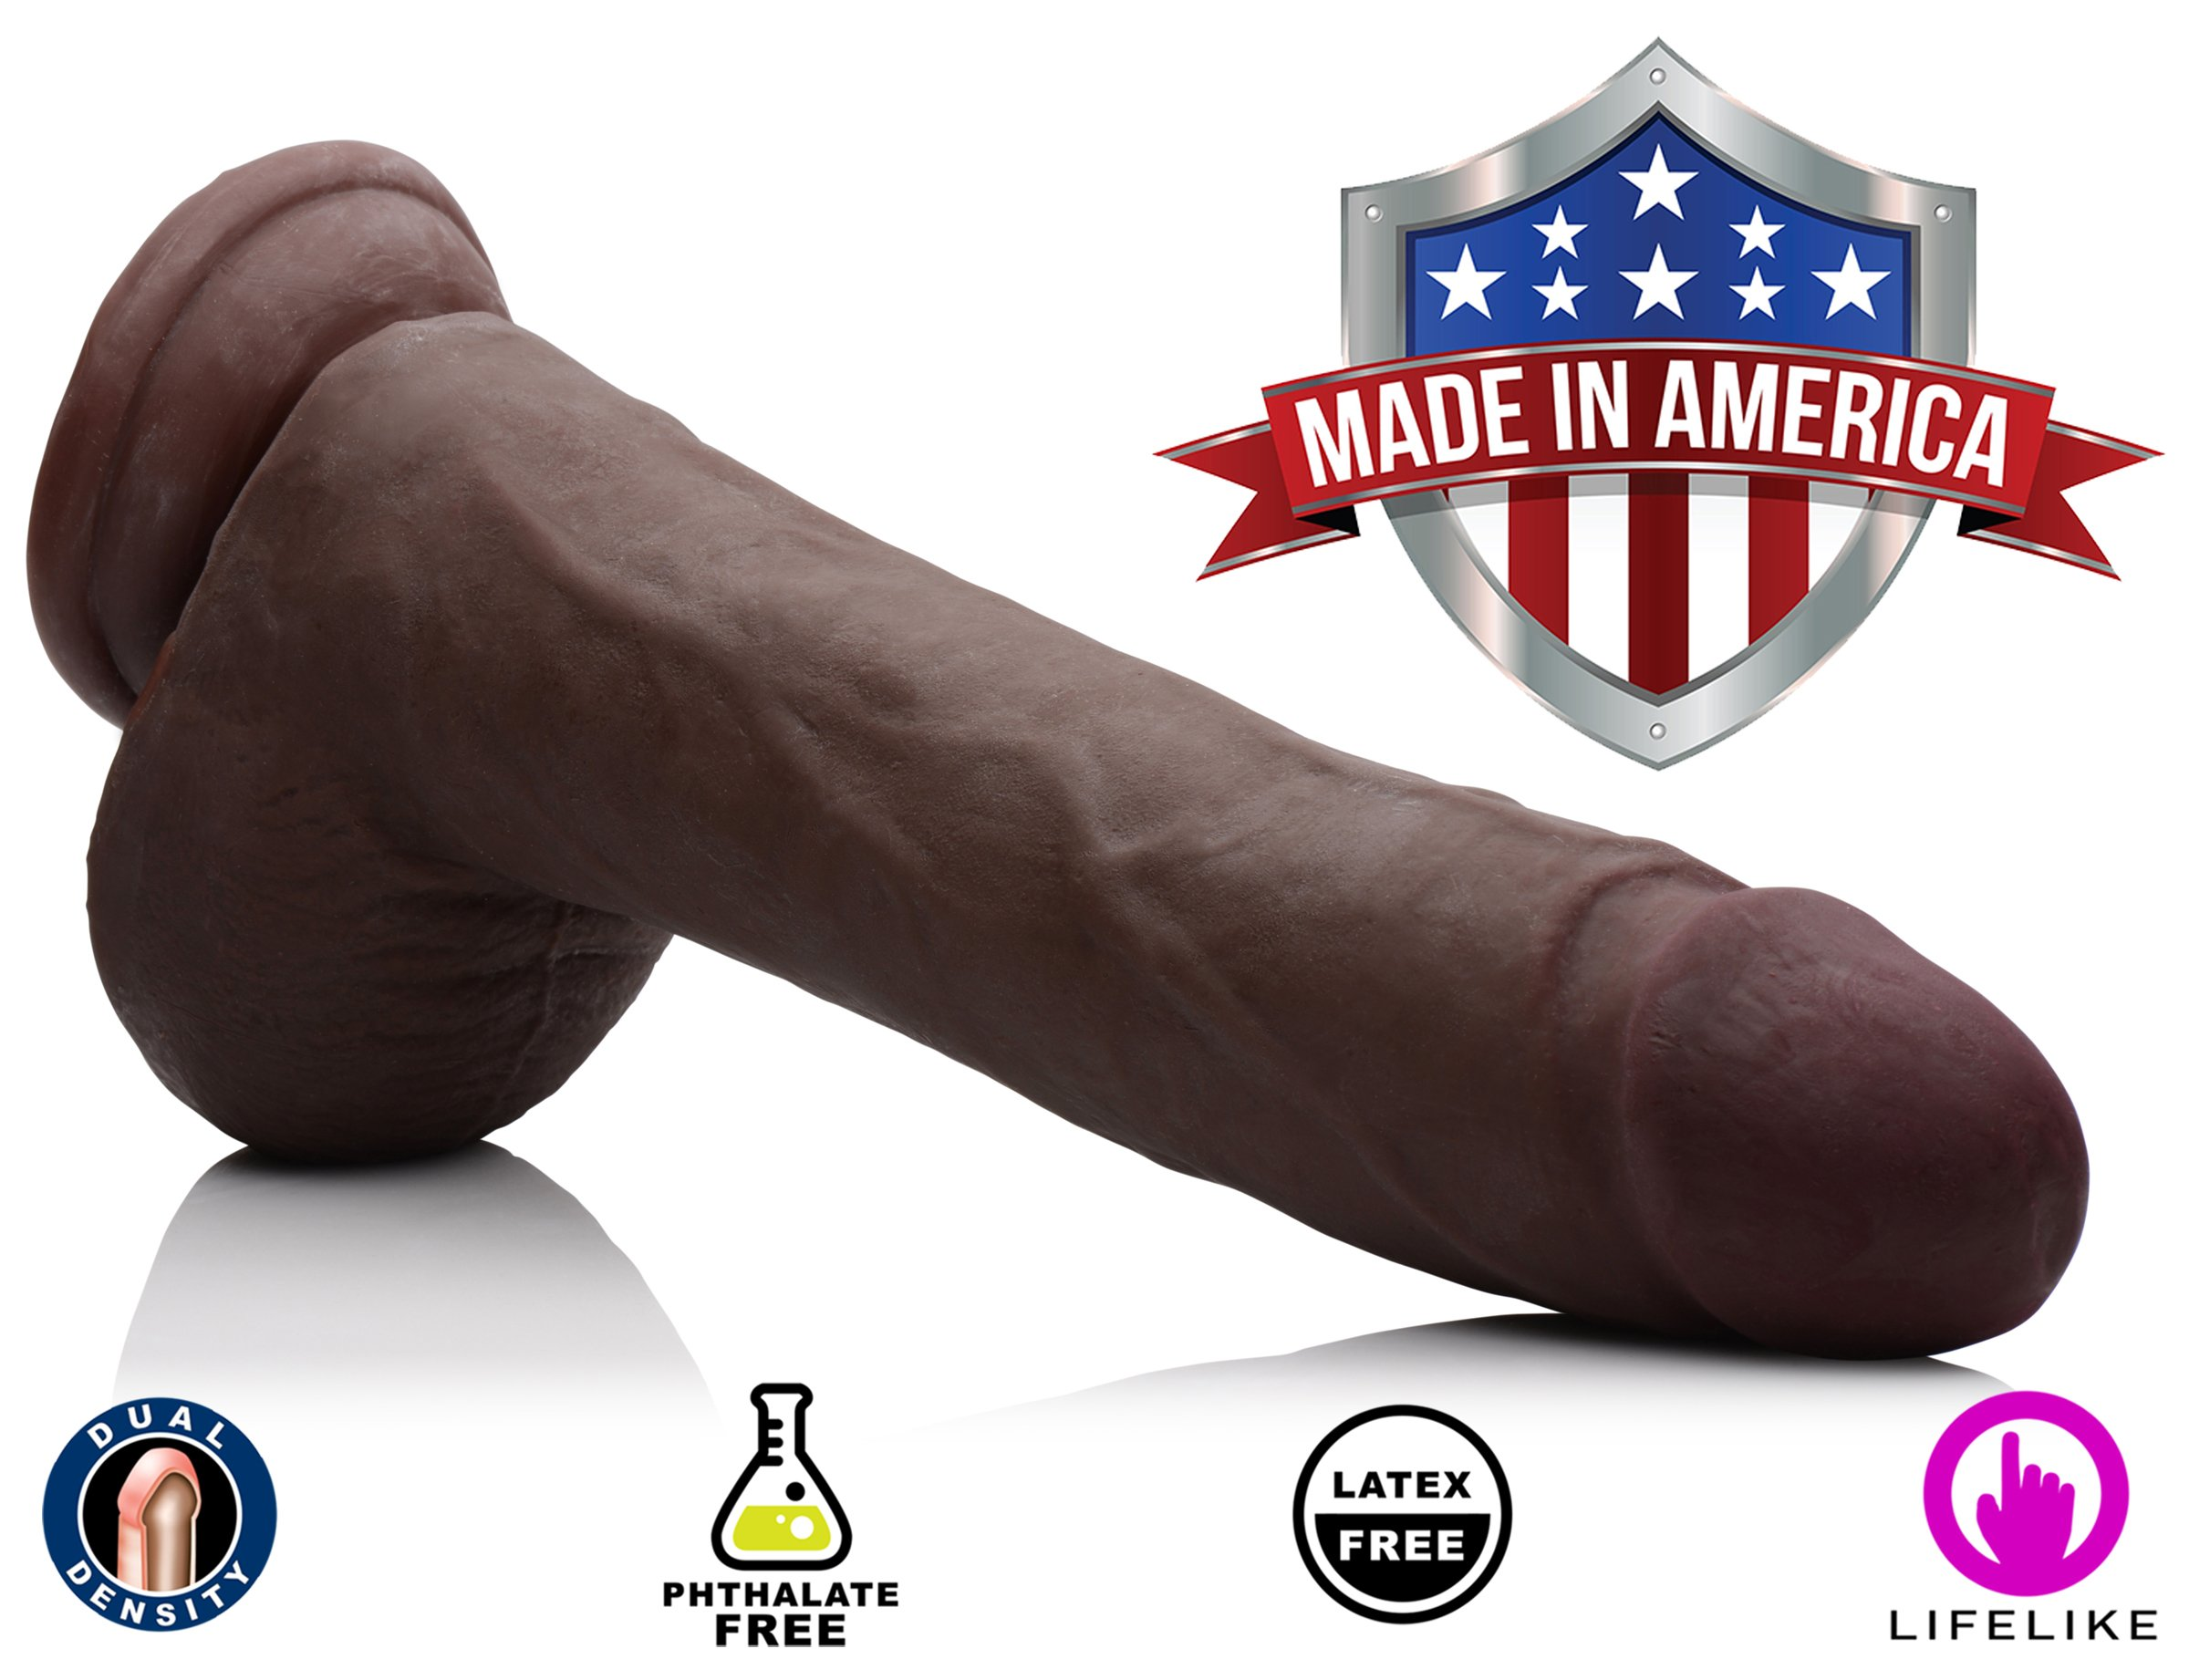 True Touch Jamal Bbc Skintech Realistic Dildo, 10 Inch